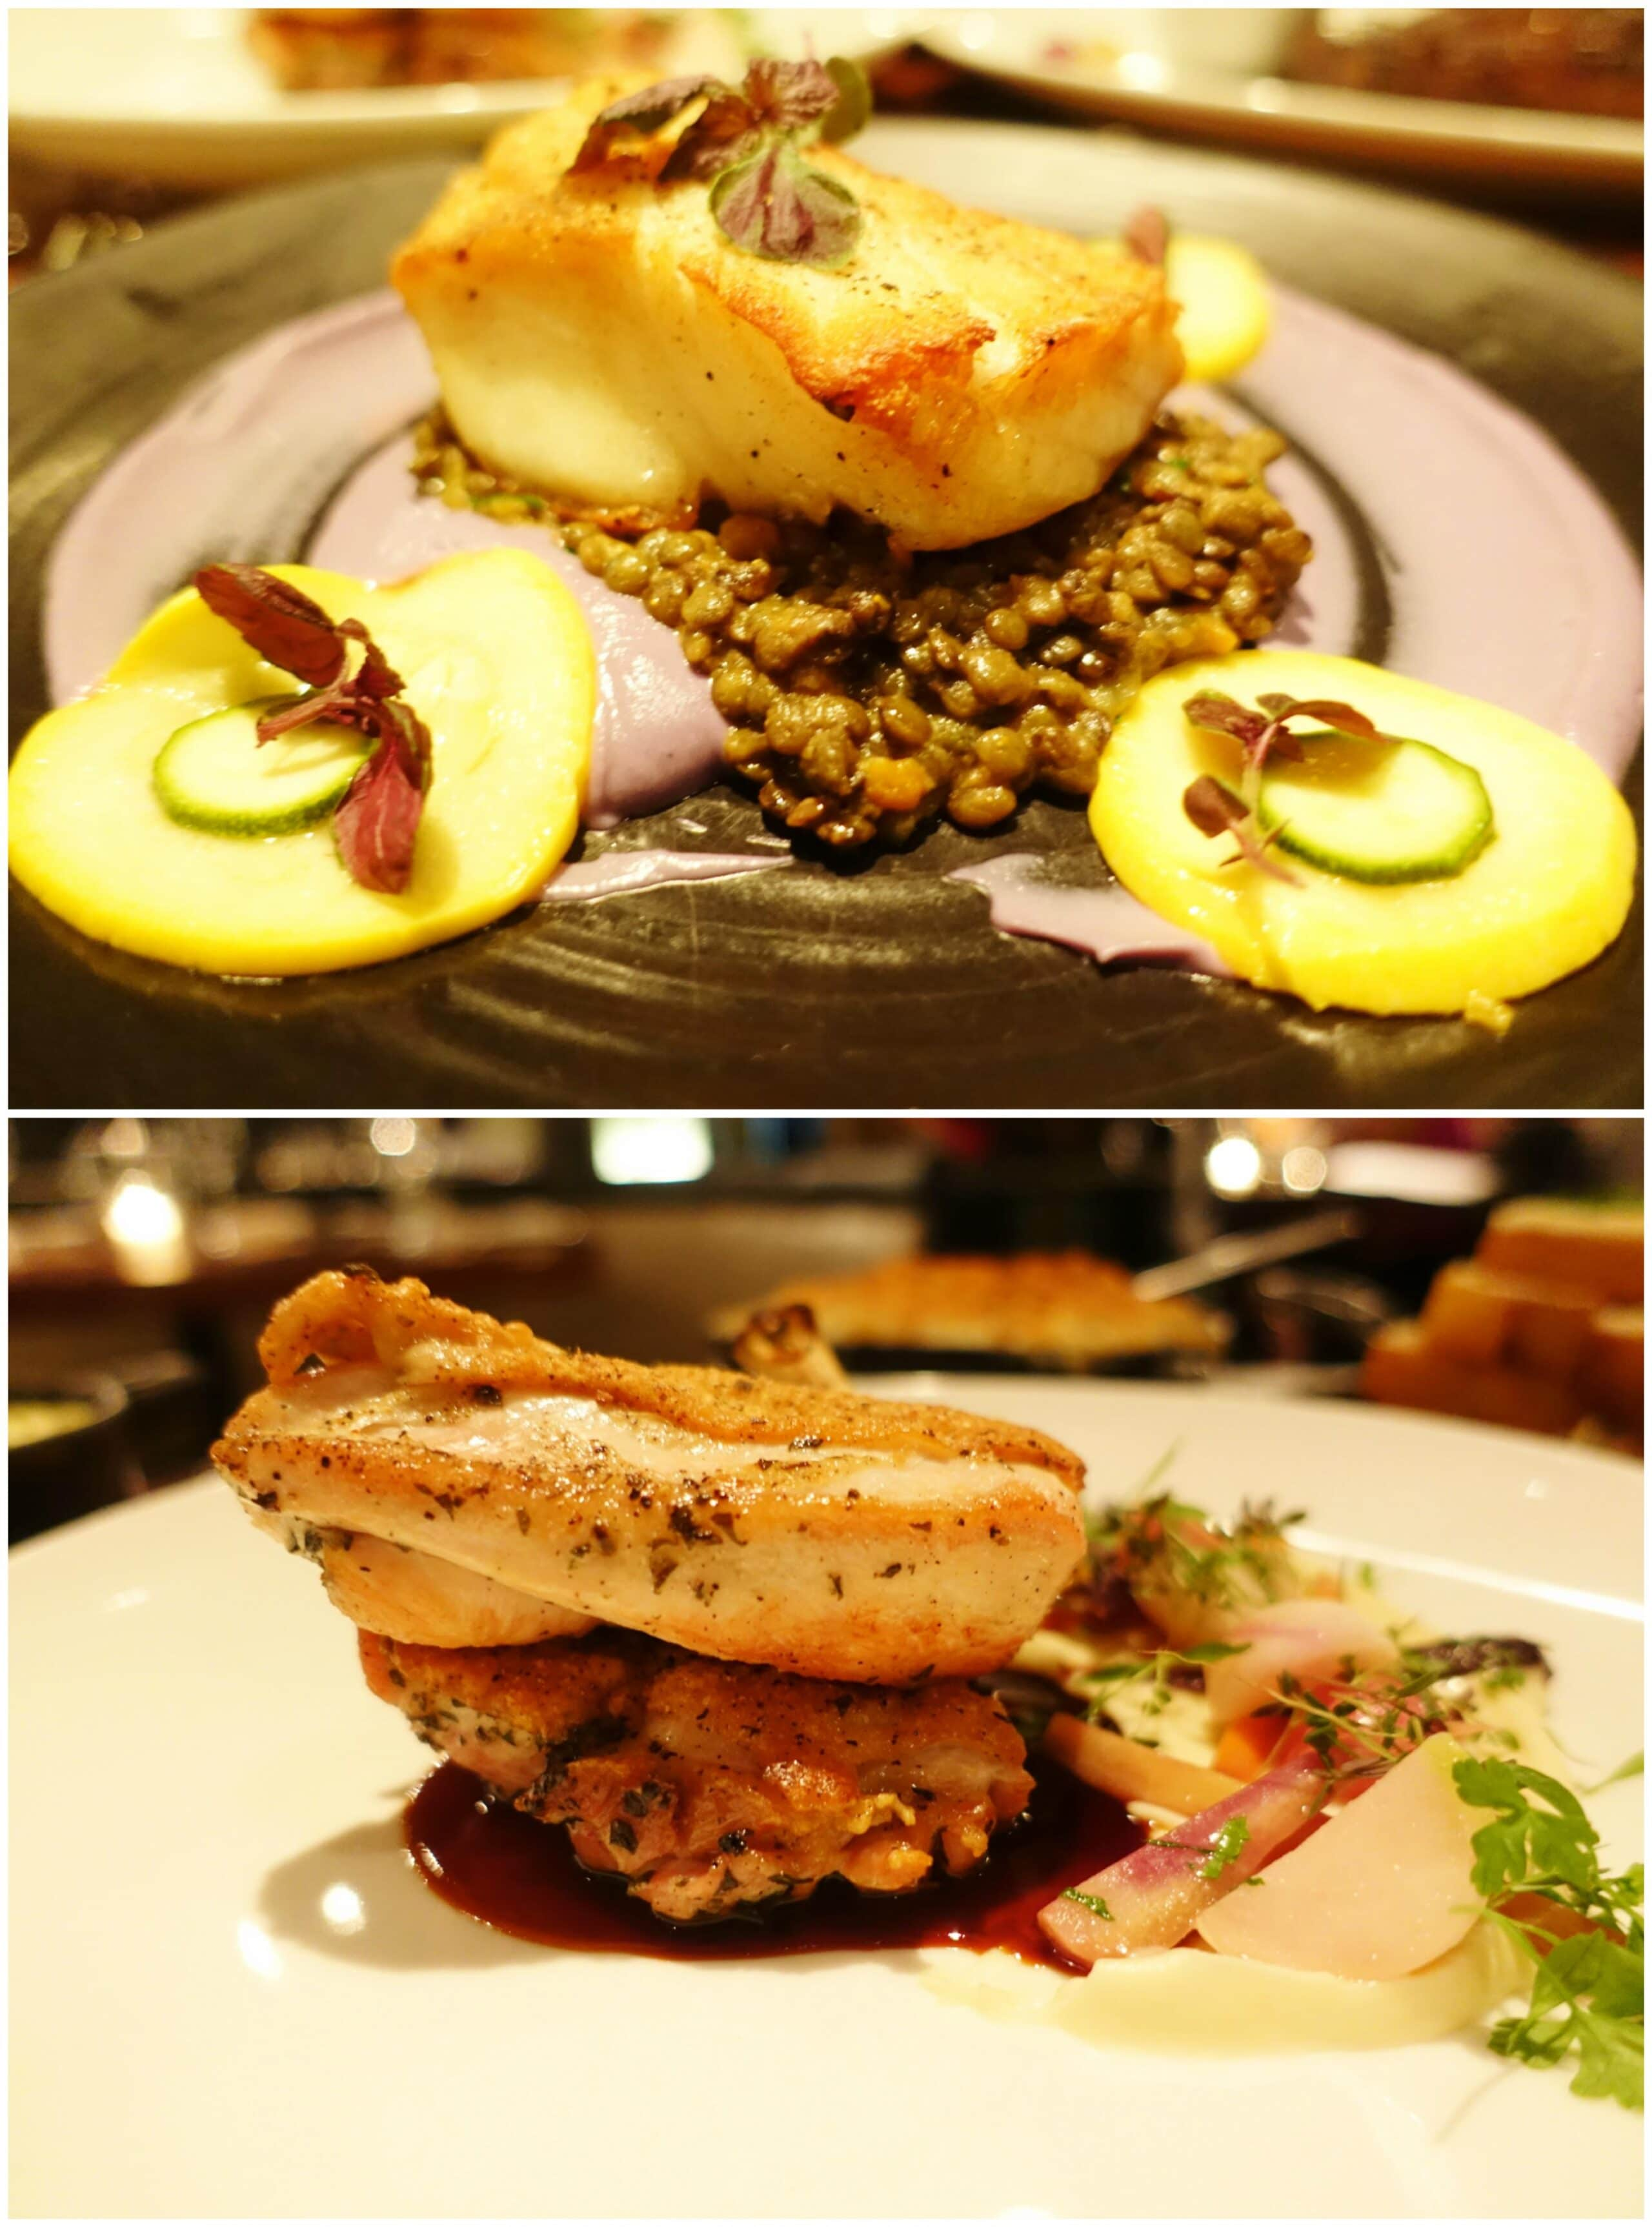 Roasted Chillean Seabass, Herb Marinated Amish Chicken - STK Downtown, New York City